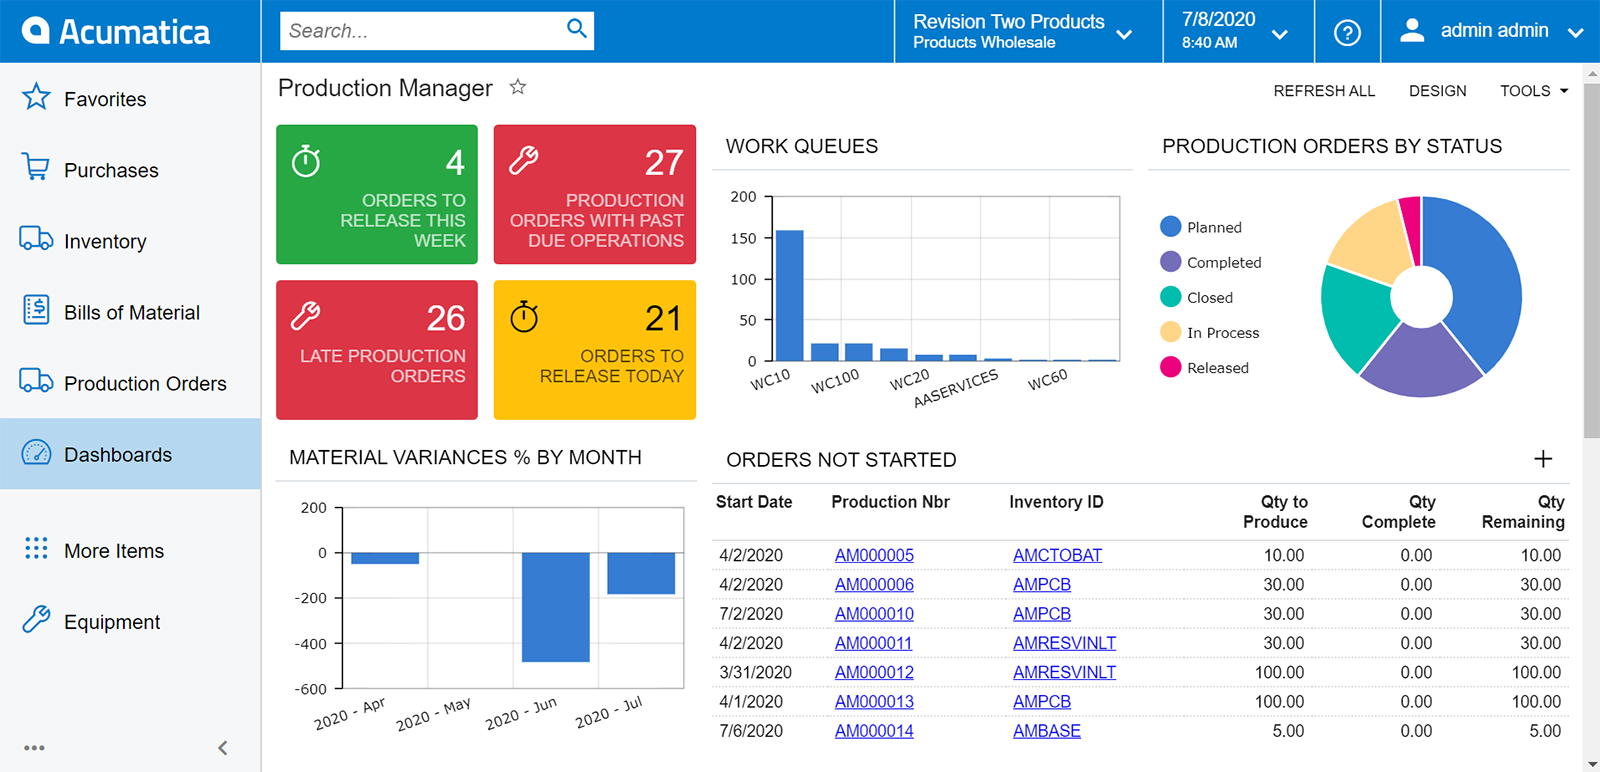 Production Manager Dashboard